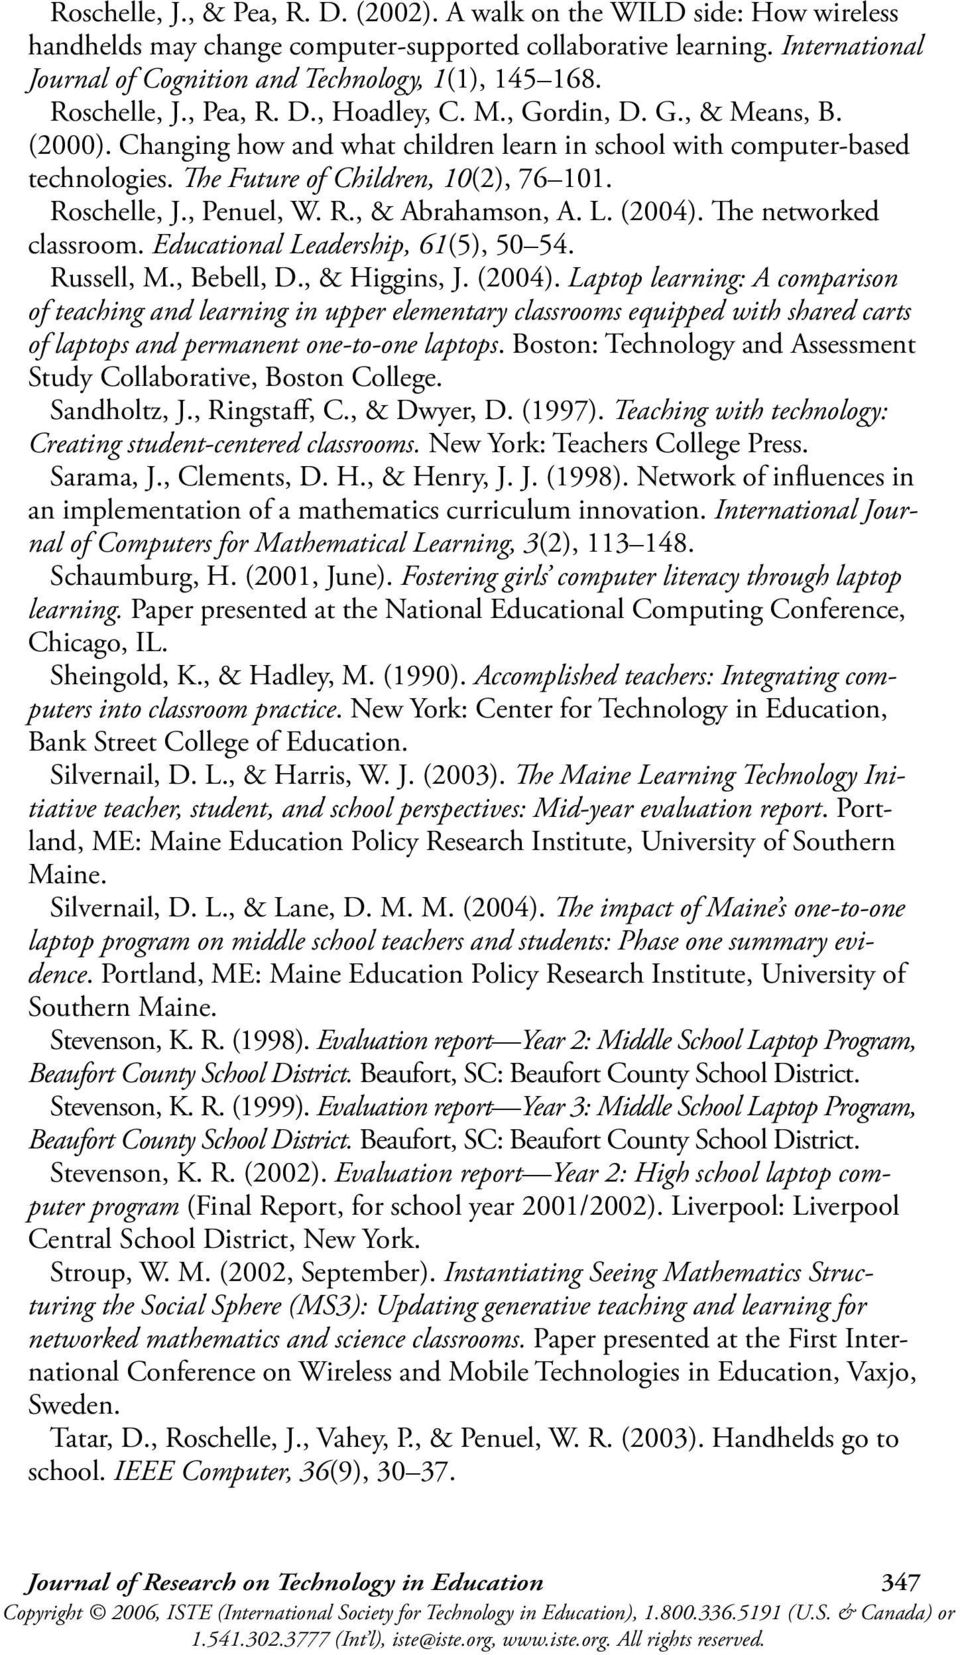 Changing how and what children learn in school with computer-based technologies. The Future of Children, 10(2), 76 101. Roschelle, J., Penuel, W. R., & Abrahamson, A. L. (2004).